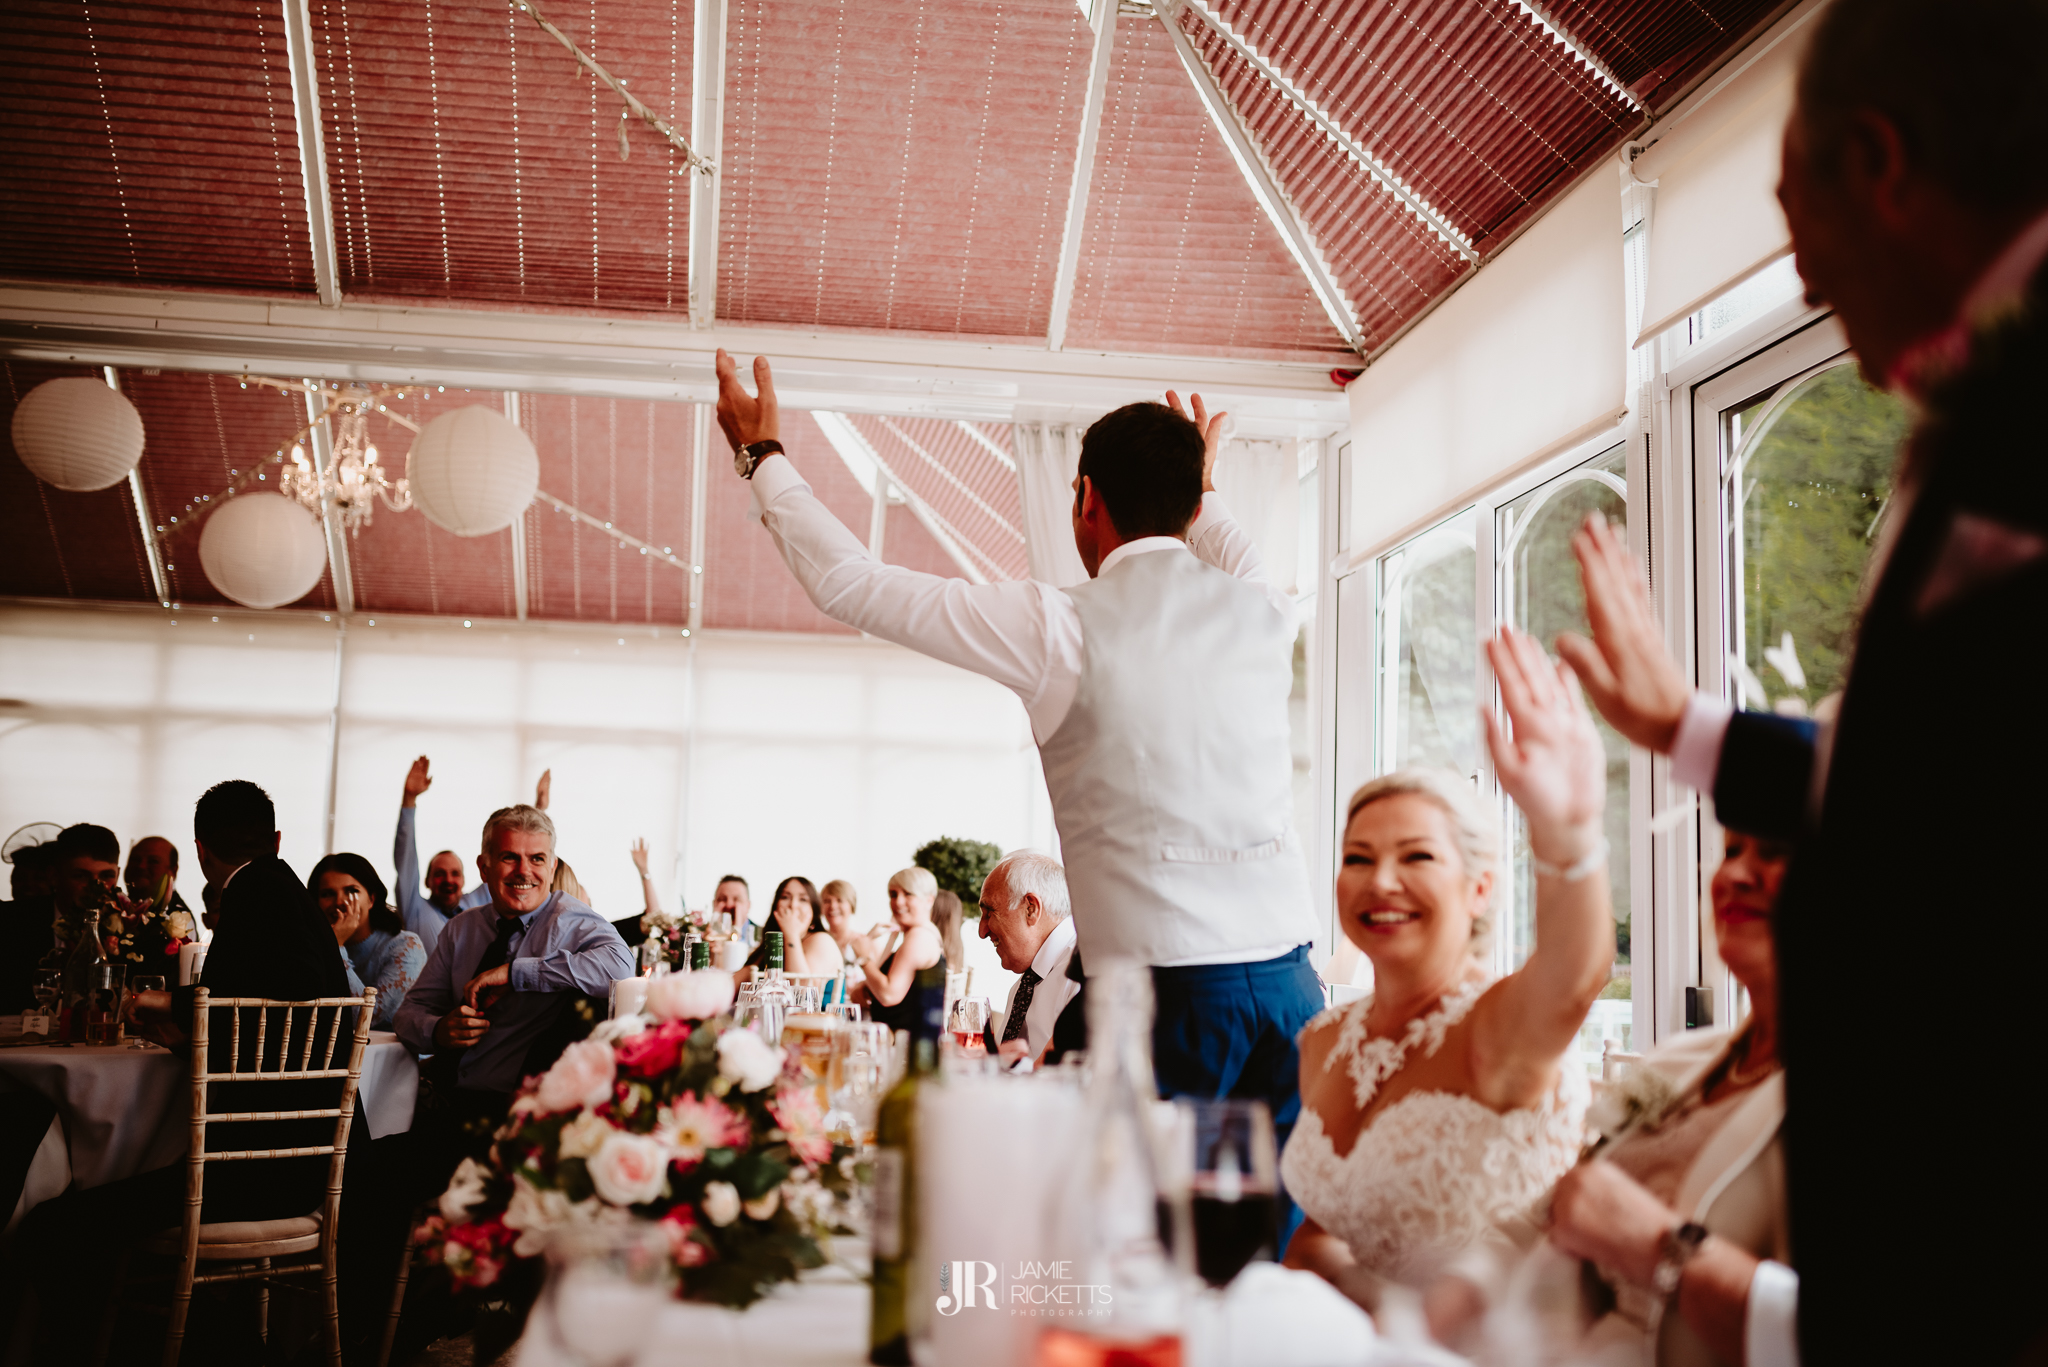 Wroxeter-Hotel-Wedding-Photography-In-Shropshire-By-Shropshire-Wedding-Photographer-Jamie-Ricketts-154.JPG